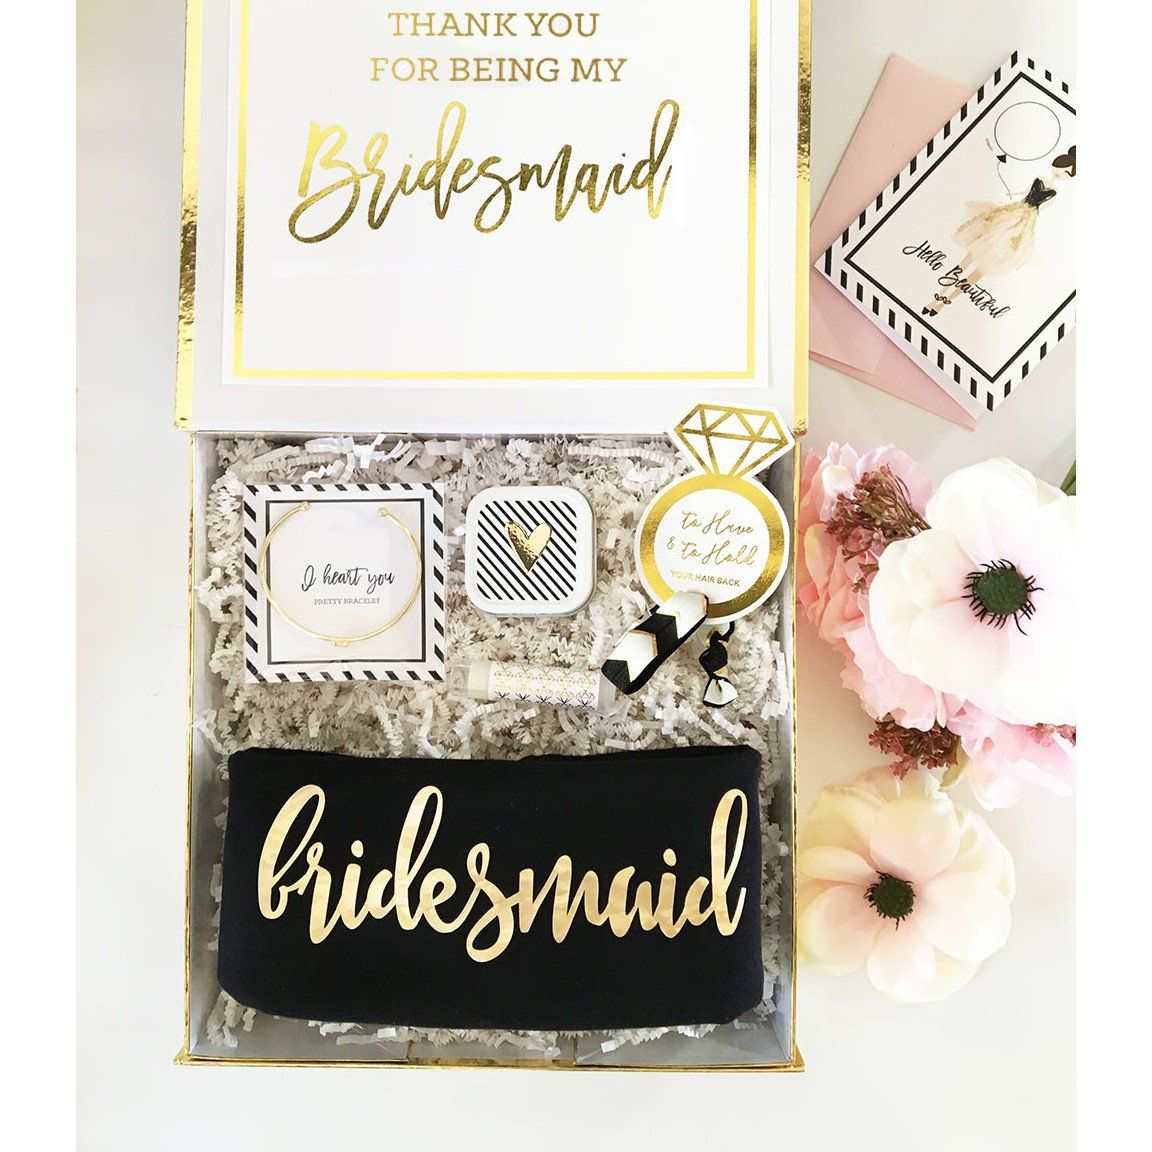 stunning personalized gift boxbirthday parties bridesmaid gift box ensembles the bridal shower baby showers wedding giftswhite gold box is